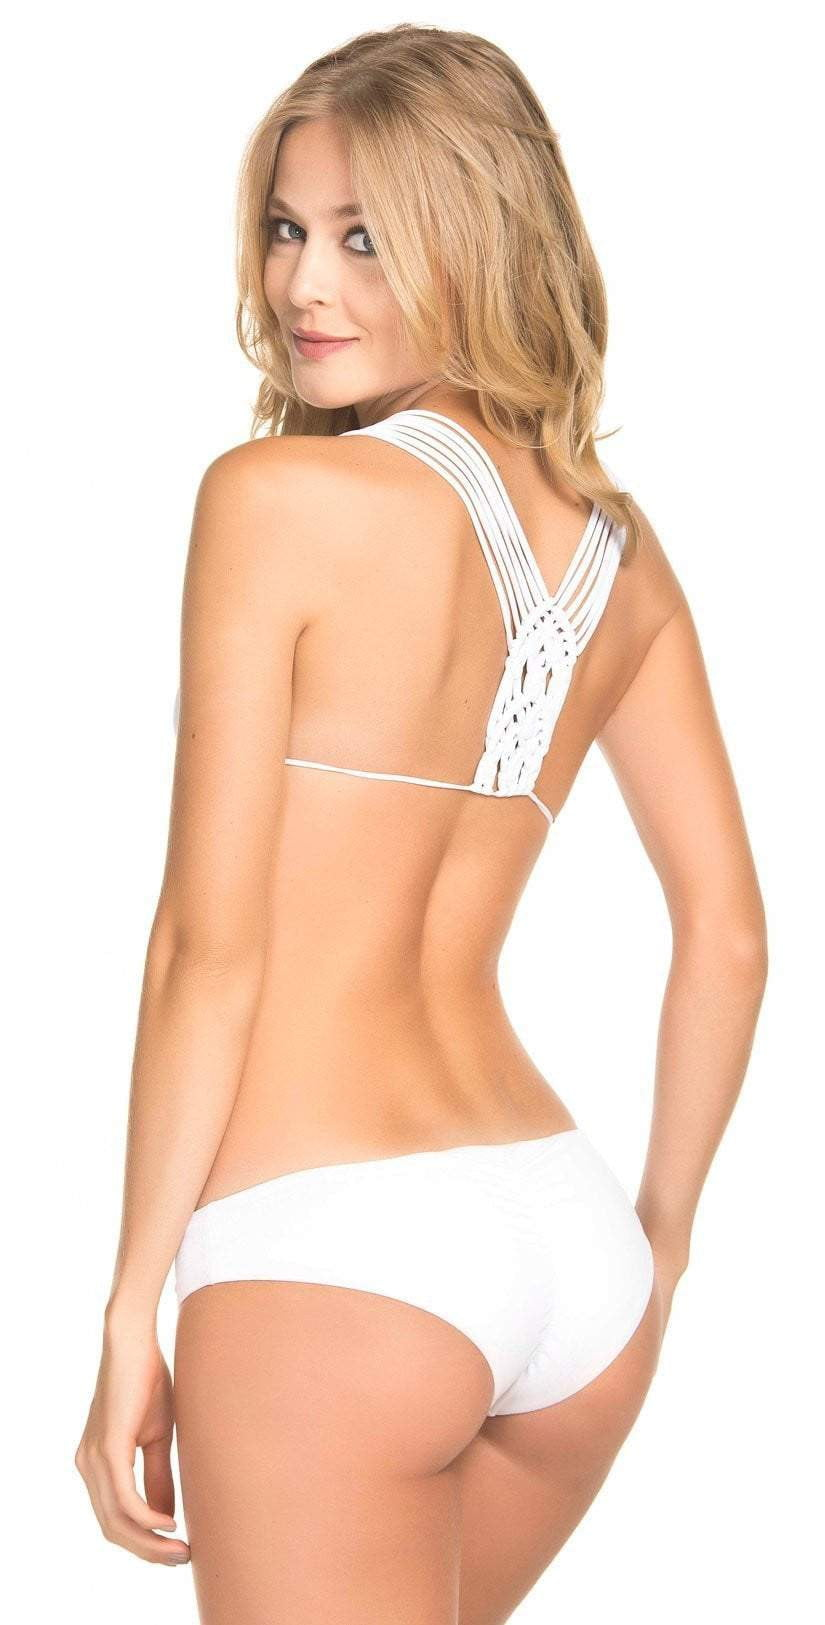 Dulzamara Fresh Bikini Set in White: